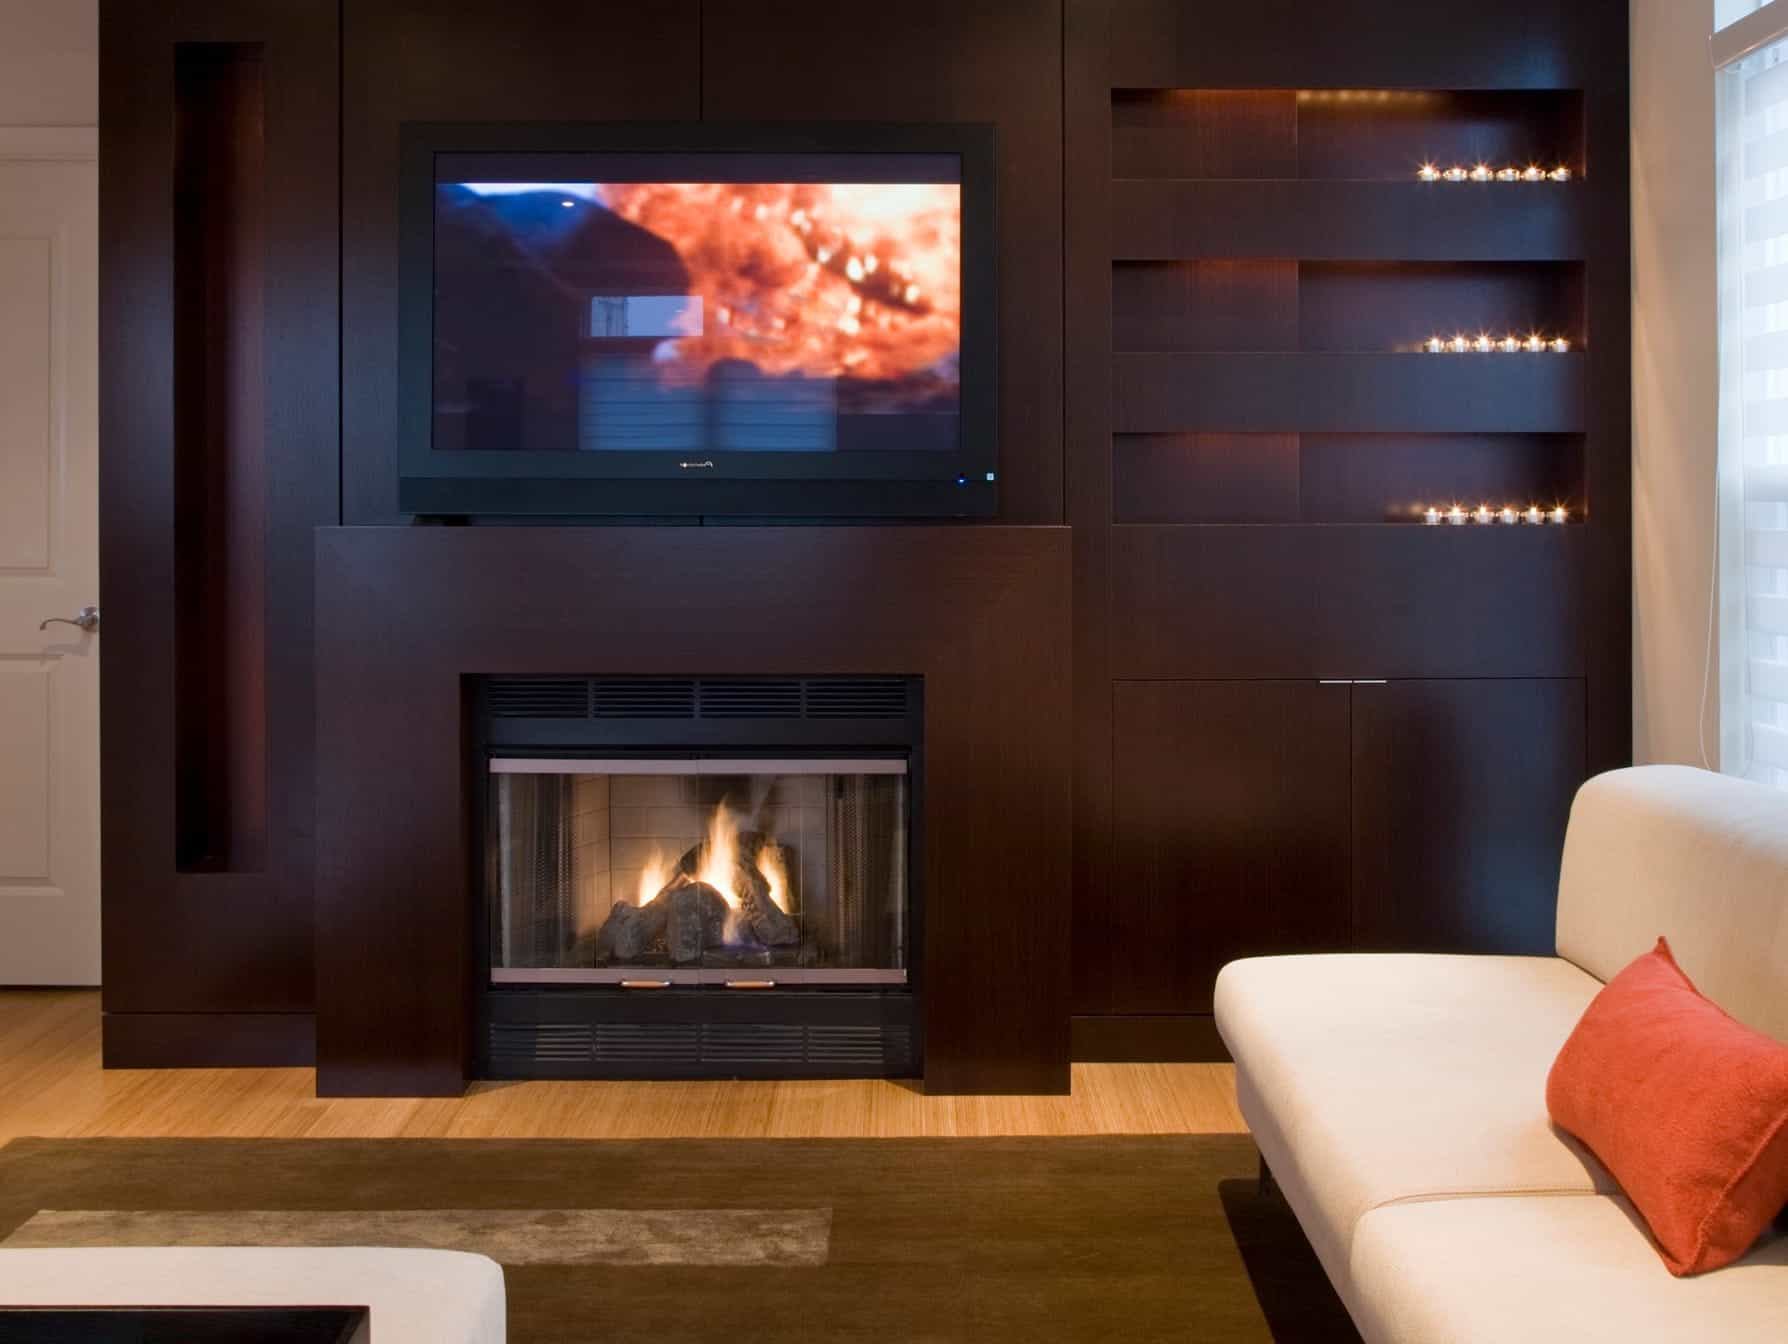 Contemporary Wood Entertainment Center With Fireplace (View 21 of 21)